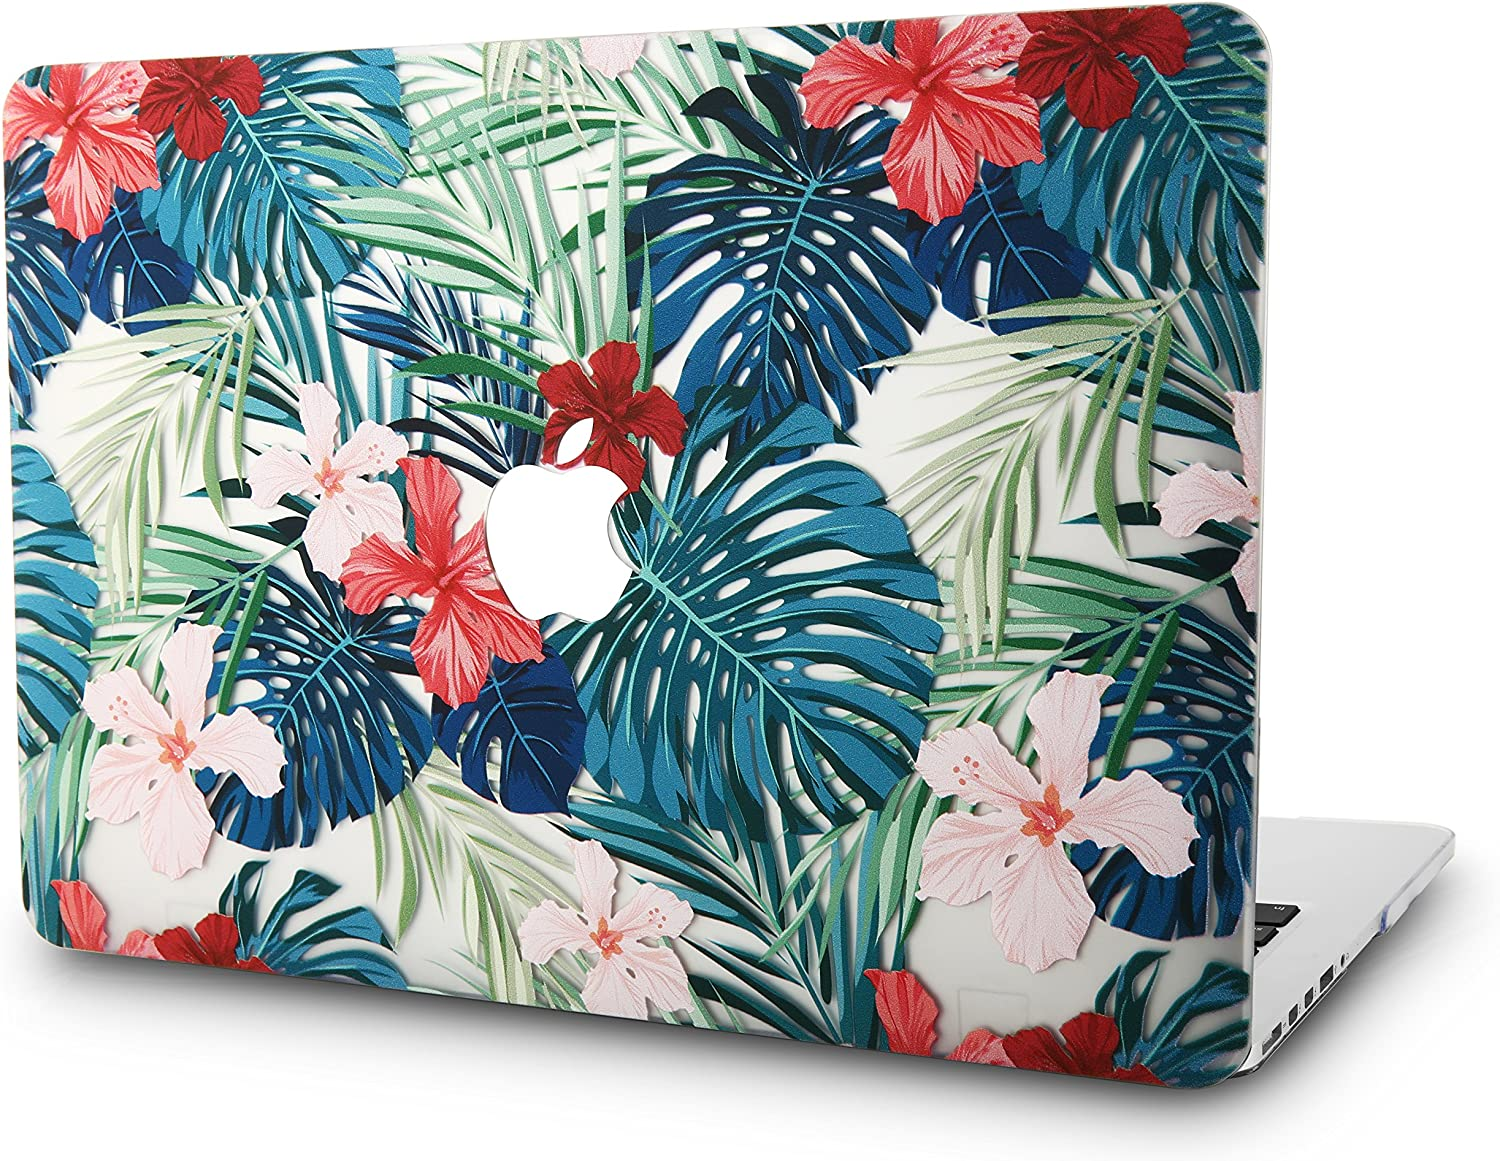 "KECC Laptop Case for Old MacBook Pro 13"" Retina (-2015) Plastic Case Hard Shell Cover A1502 / A1425 (Palm Leaves Red Flower)"